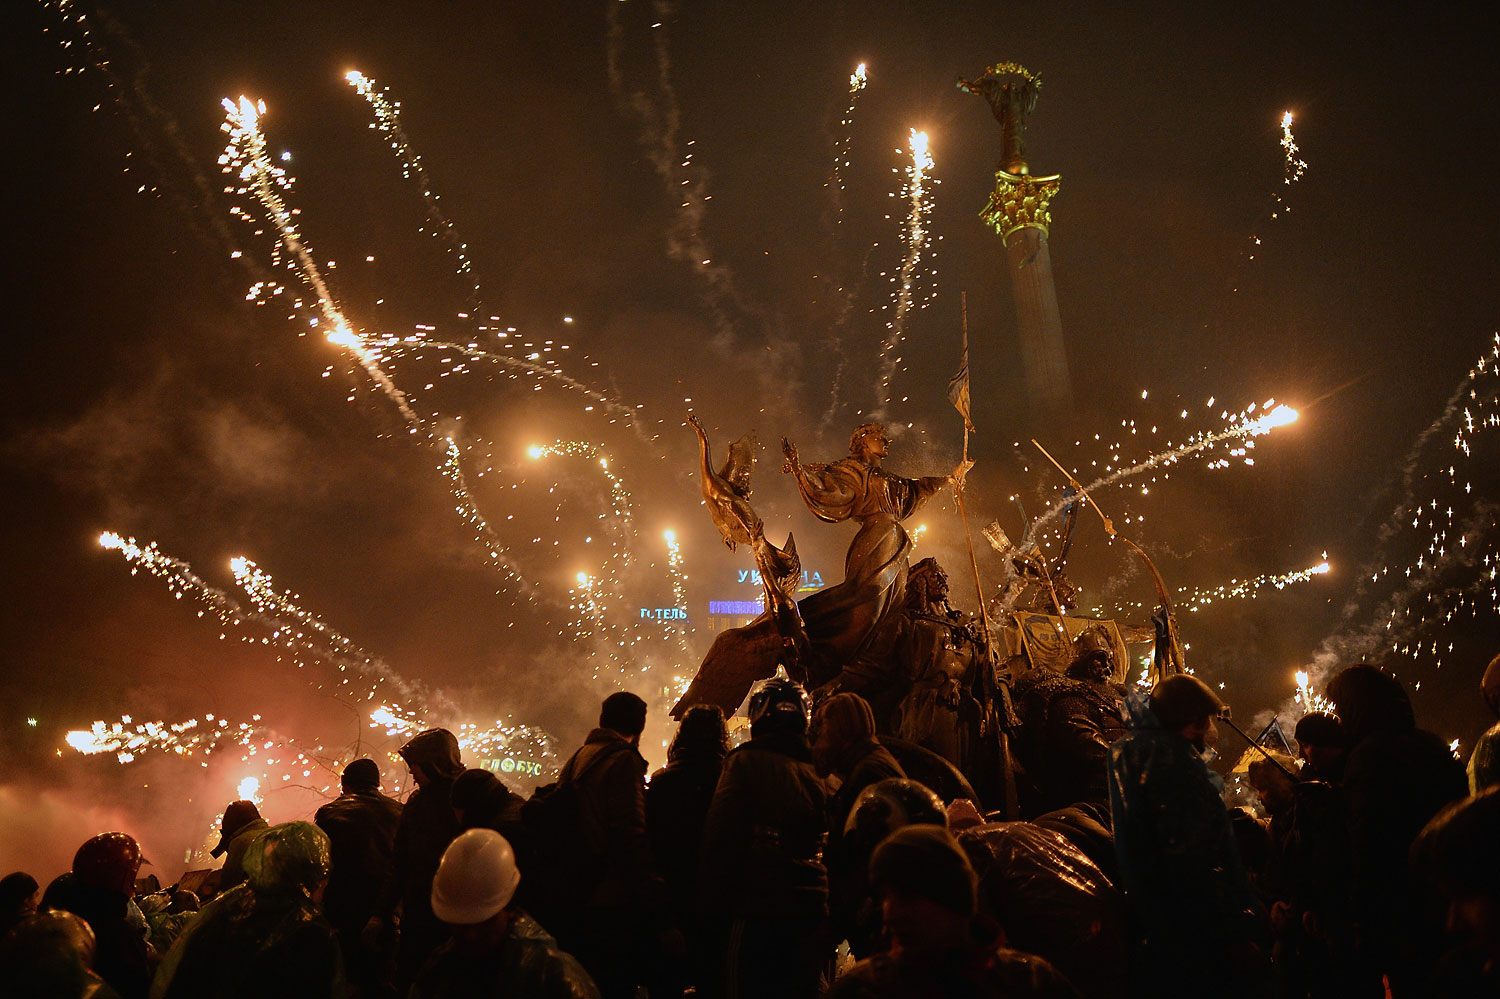 Anti-government protesters let off fireworks during demonstrations in Independence Square on Feb. 19, 2014 in Kiev, Ukraine.